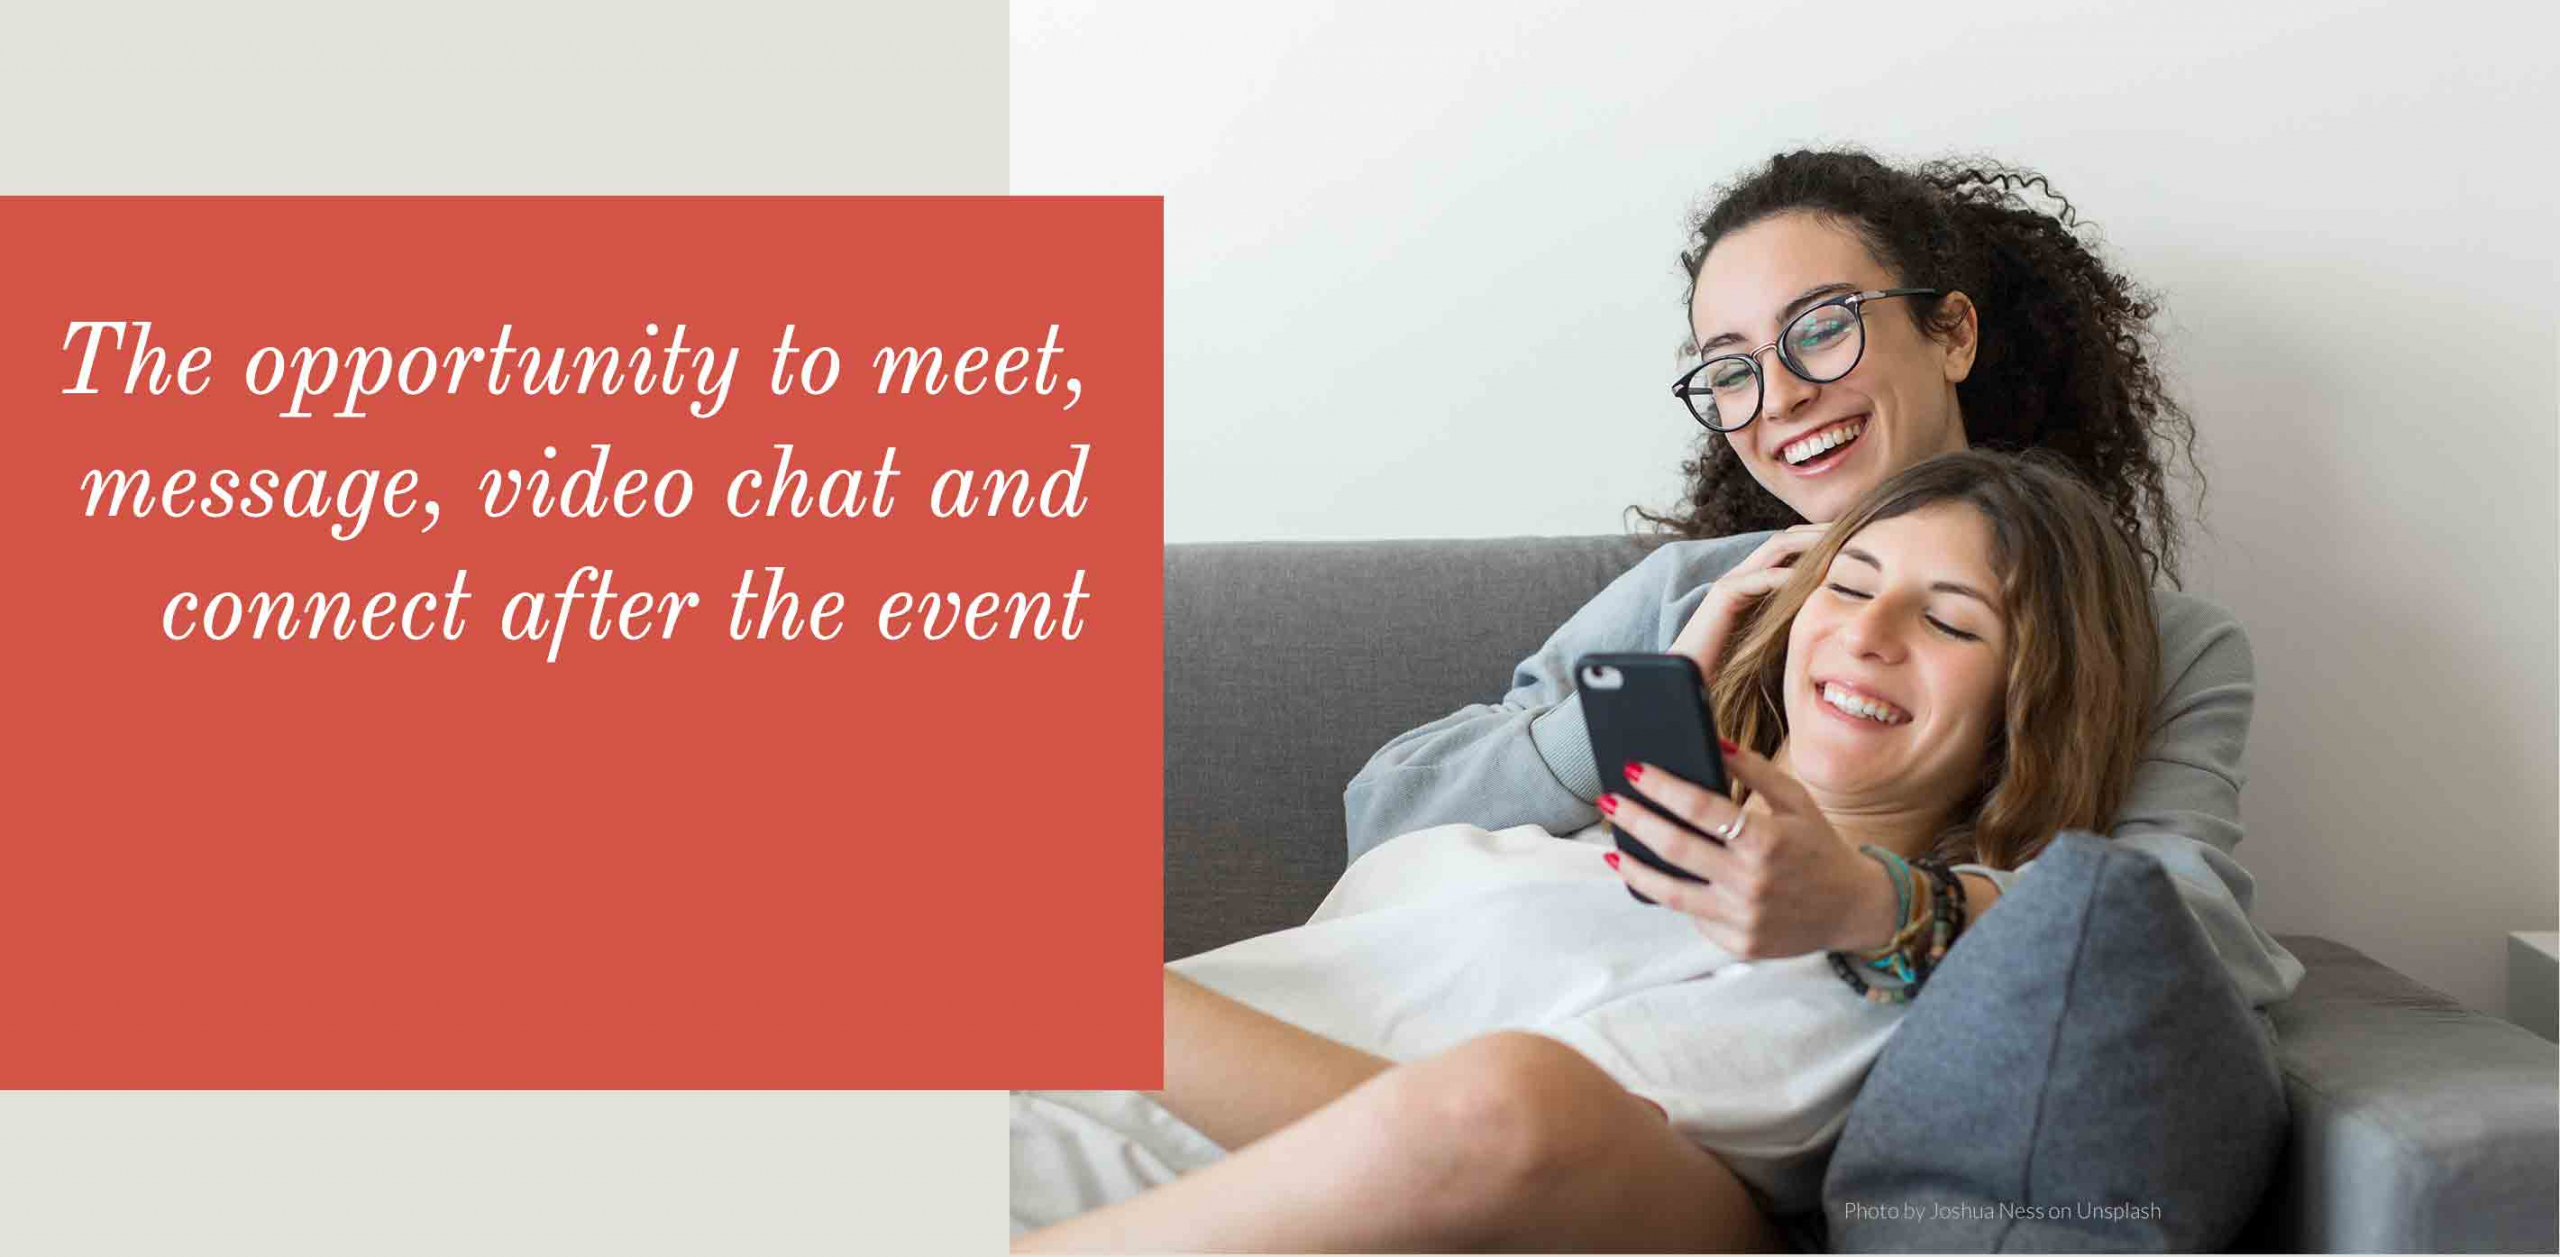 The opportunity to meet, message, video chat and connect after the event